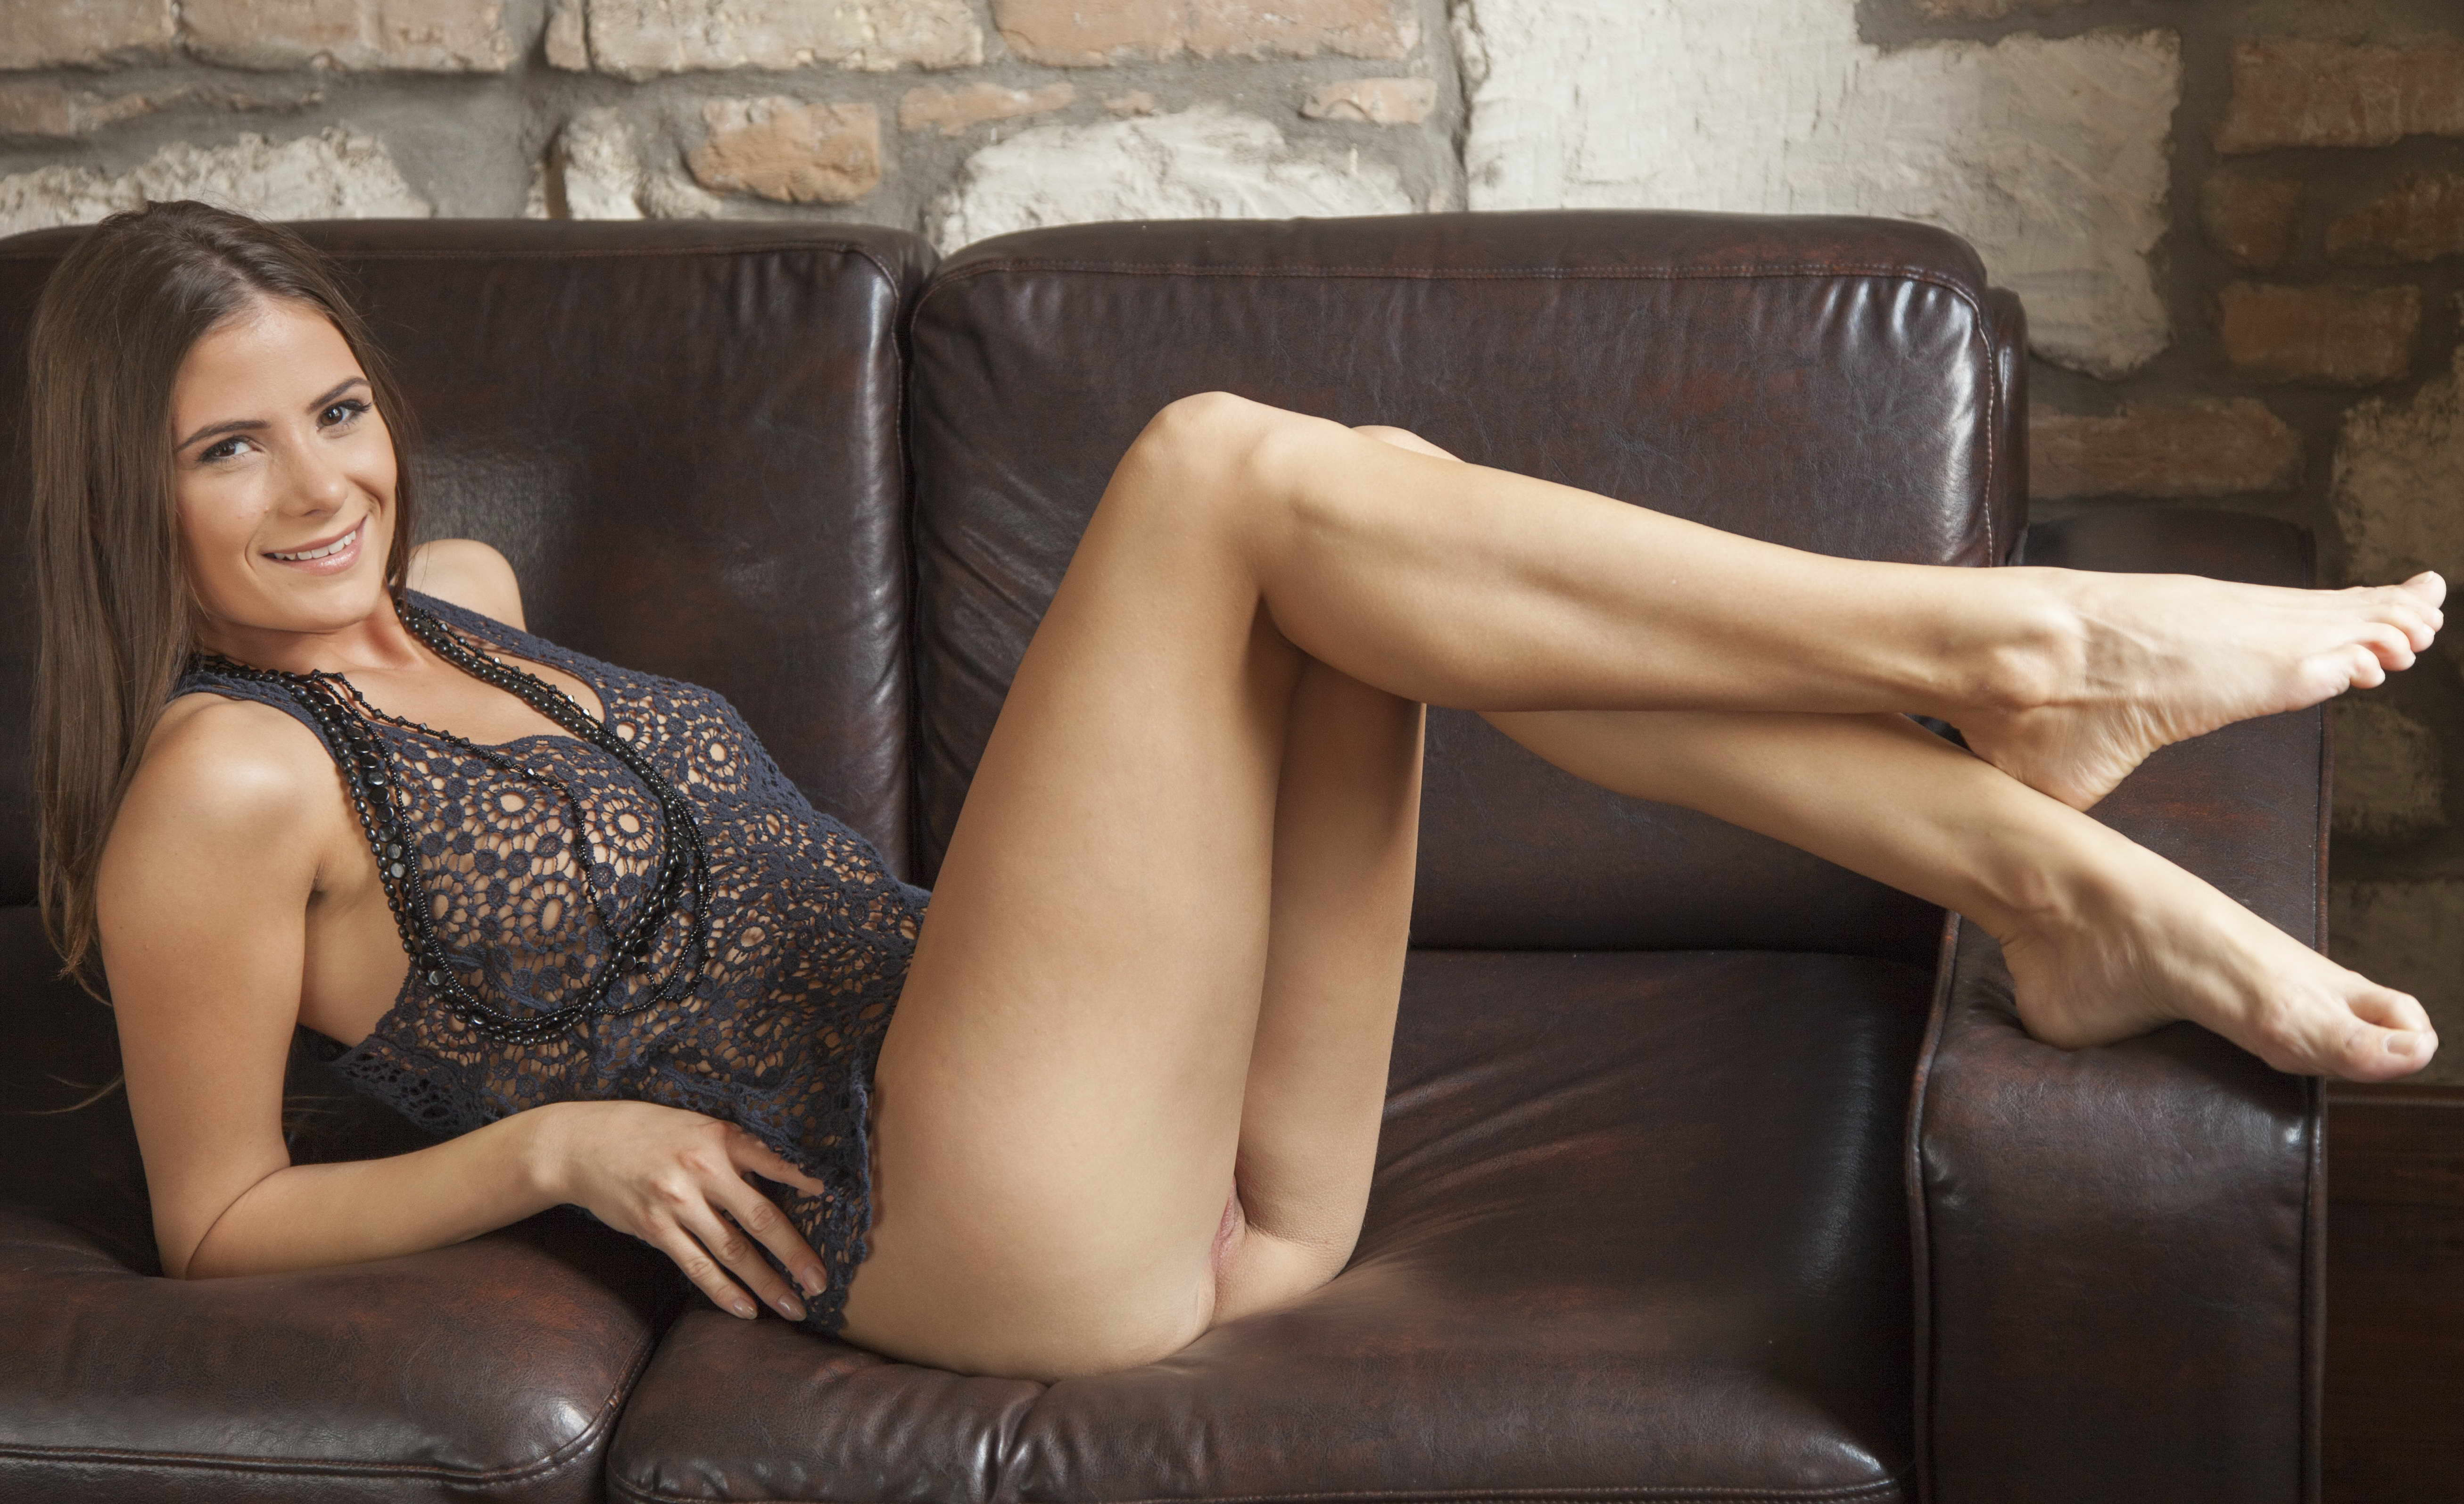 Classy Lady - Naked And Teasing